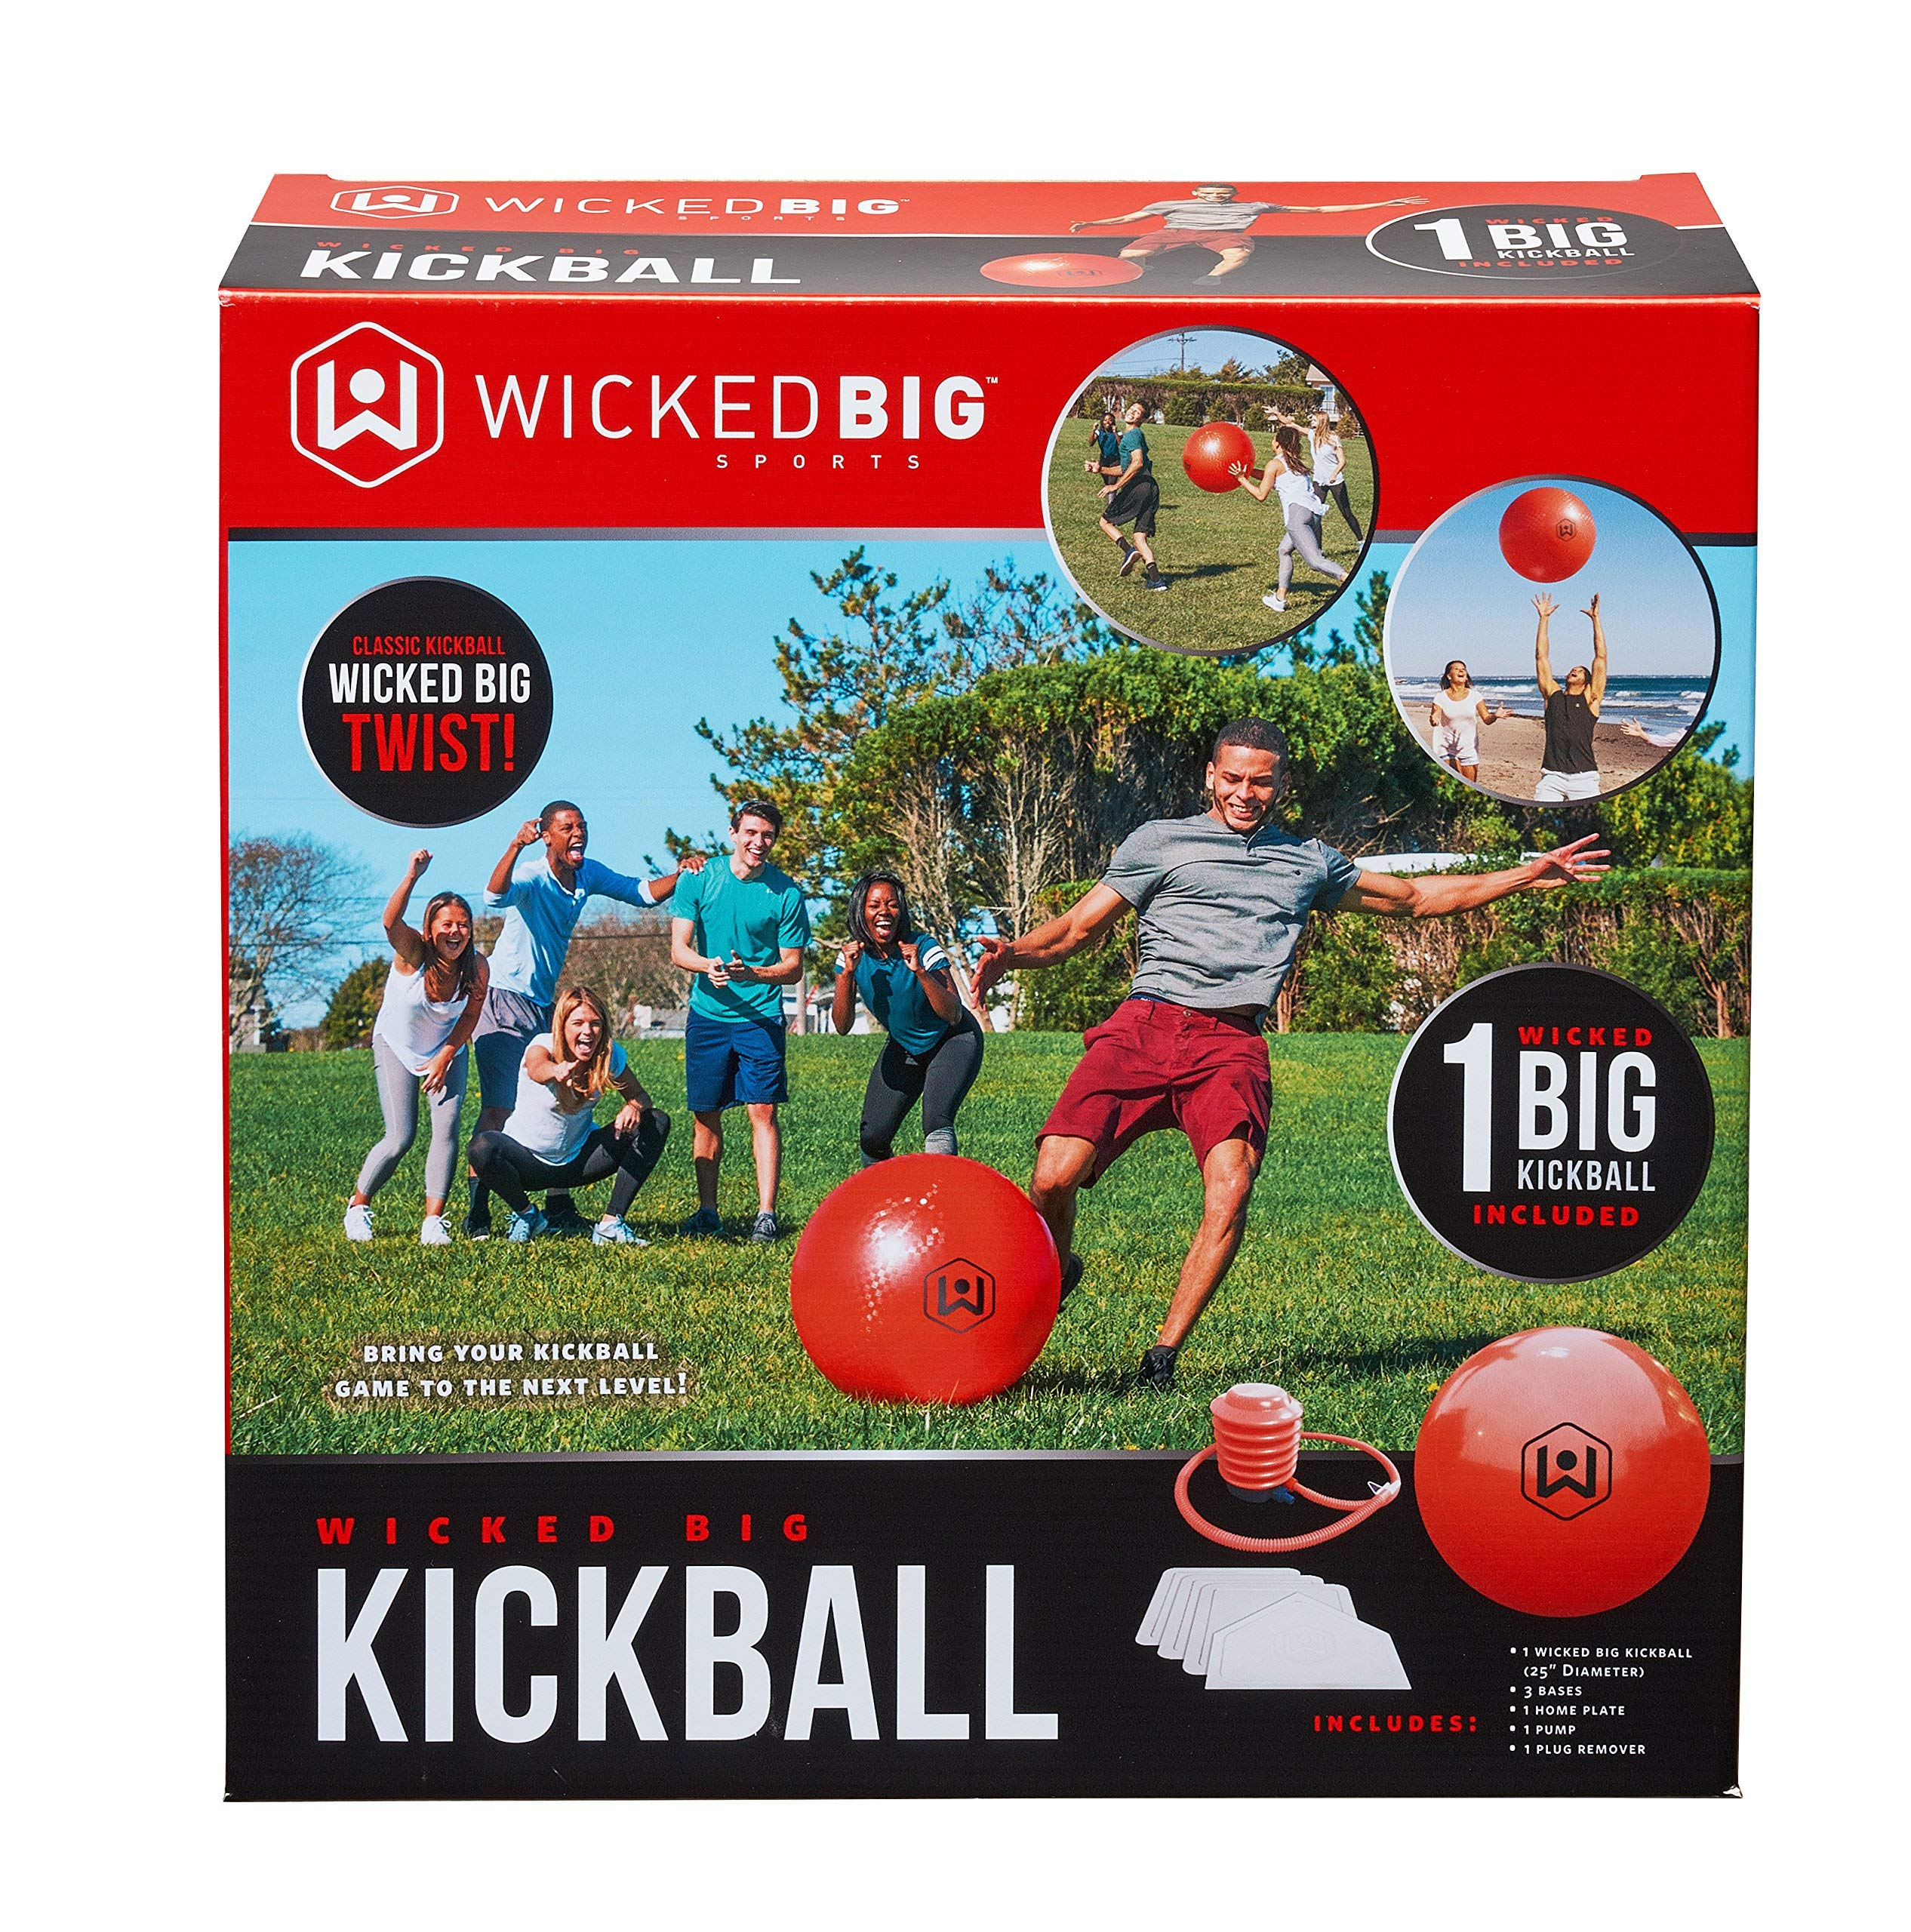 Wicked Big Sports Kickball-Supersized Kickball Outdoor Sport Tailgate Backyard Beach Game Fun for All (Renewed)